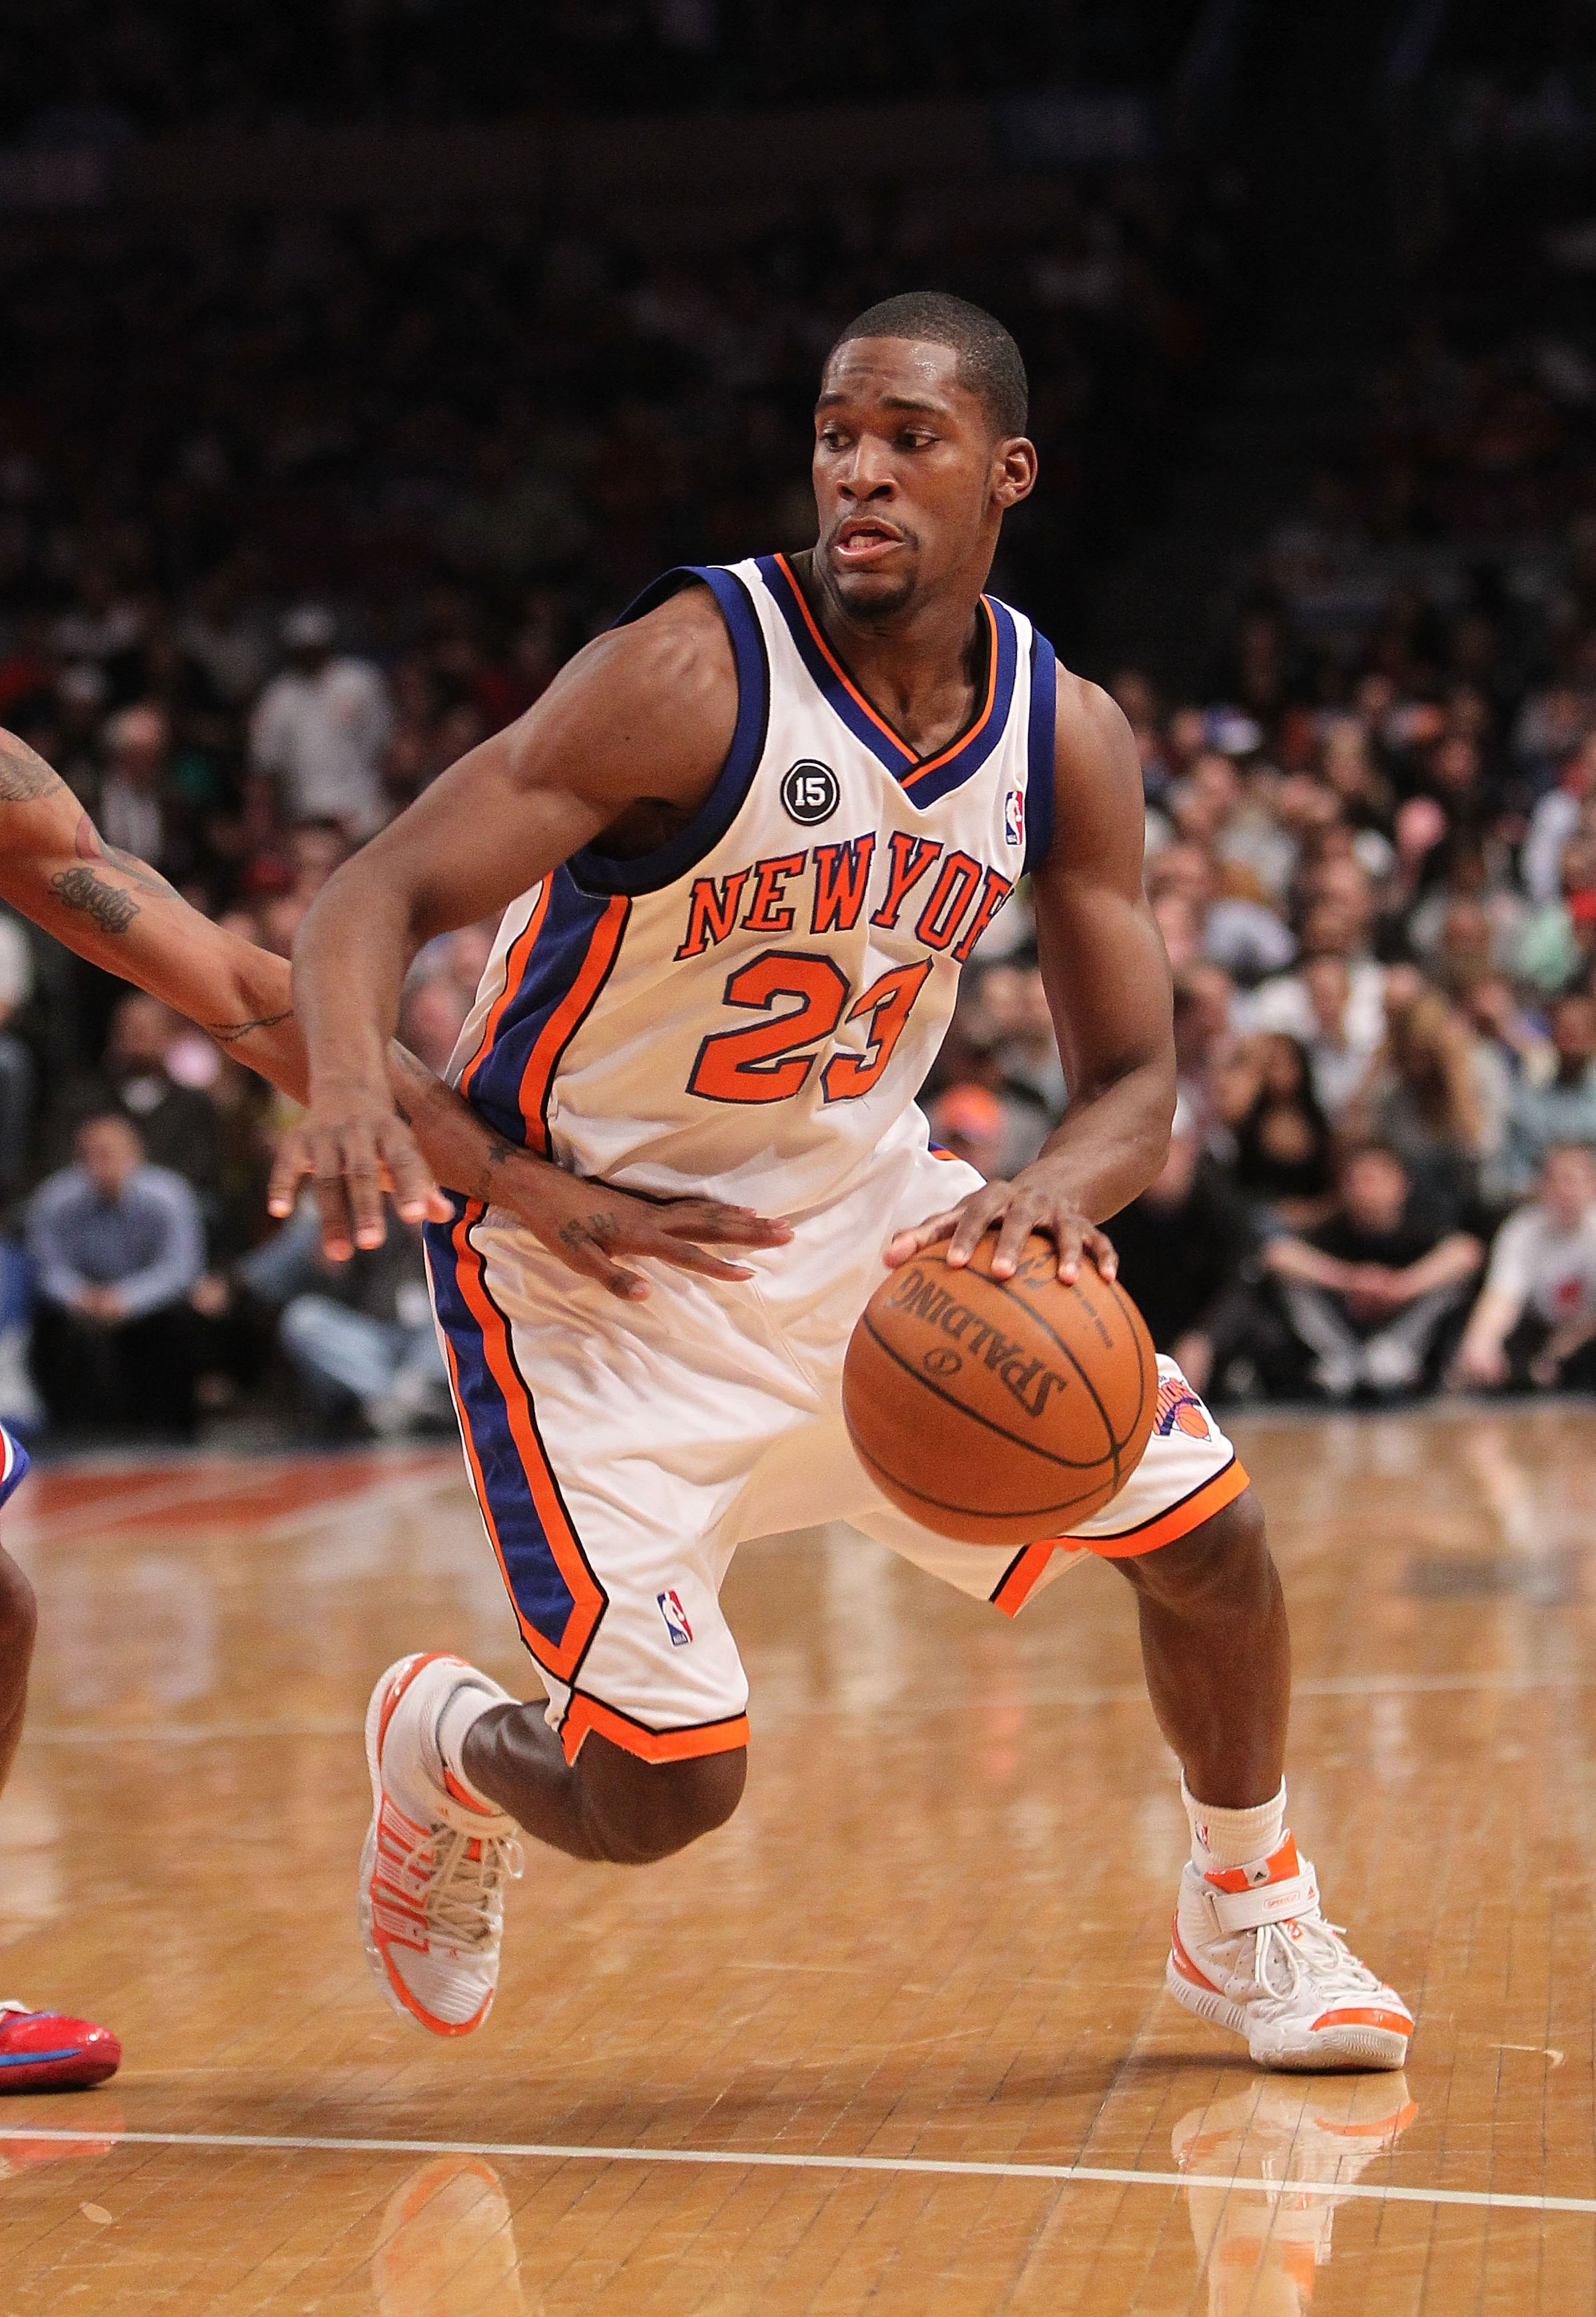 NEW YORK - MARCH 19:  Toney Douglas #23 of the New York Knicks against the Philadelphia 76ers at Madison Square Garden on March 19, 2010 in New York City. NOTE TO USER: User expressly acknowledges and agrees that, by downloading and or using this photogra